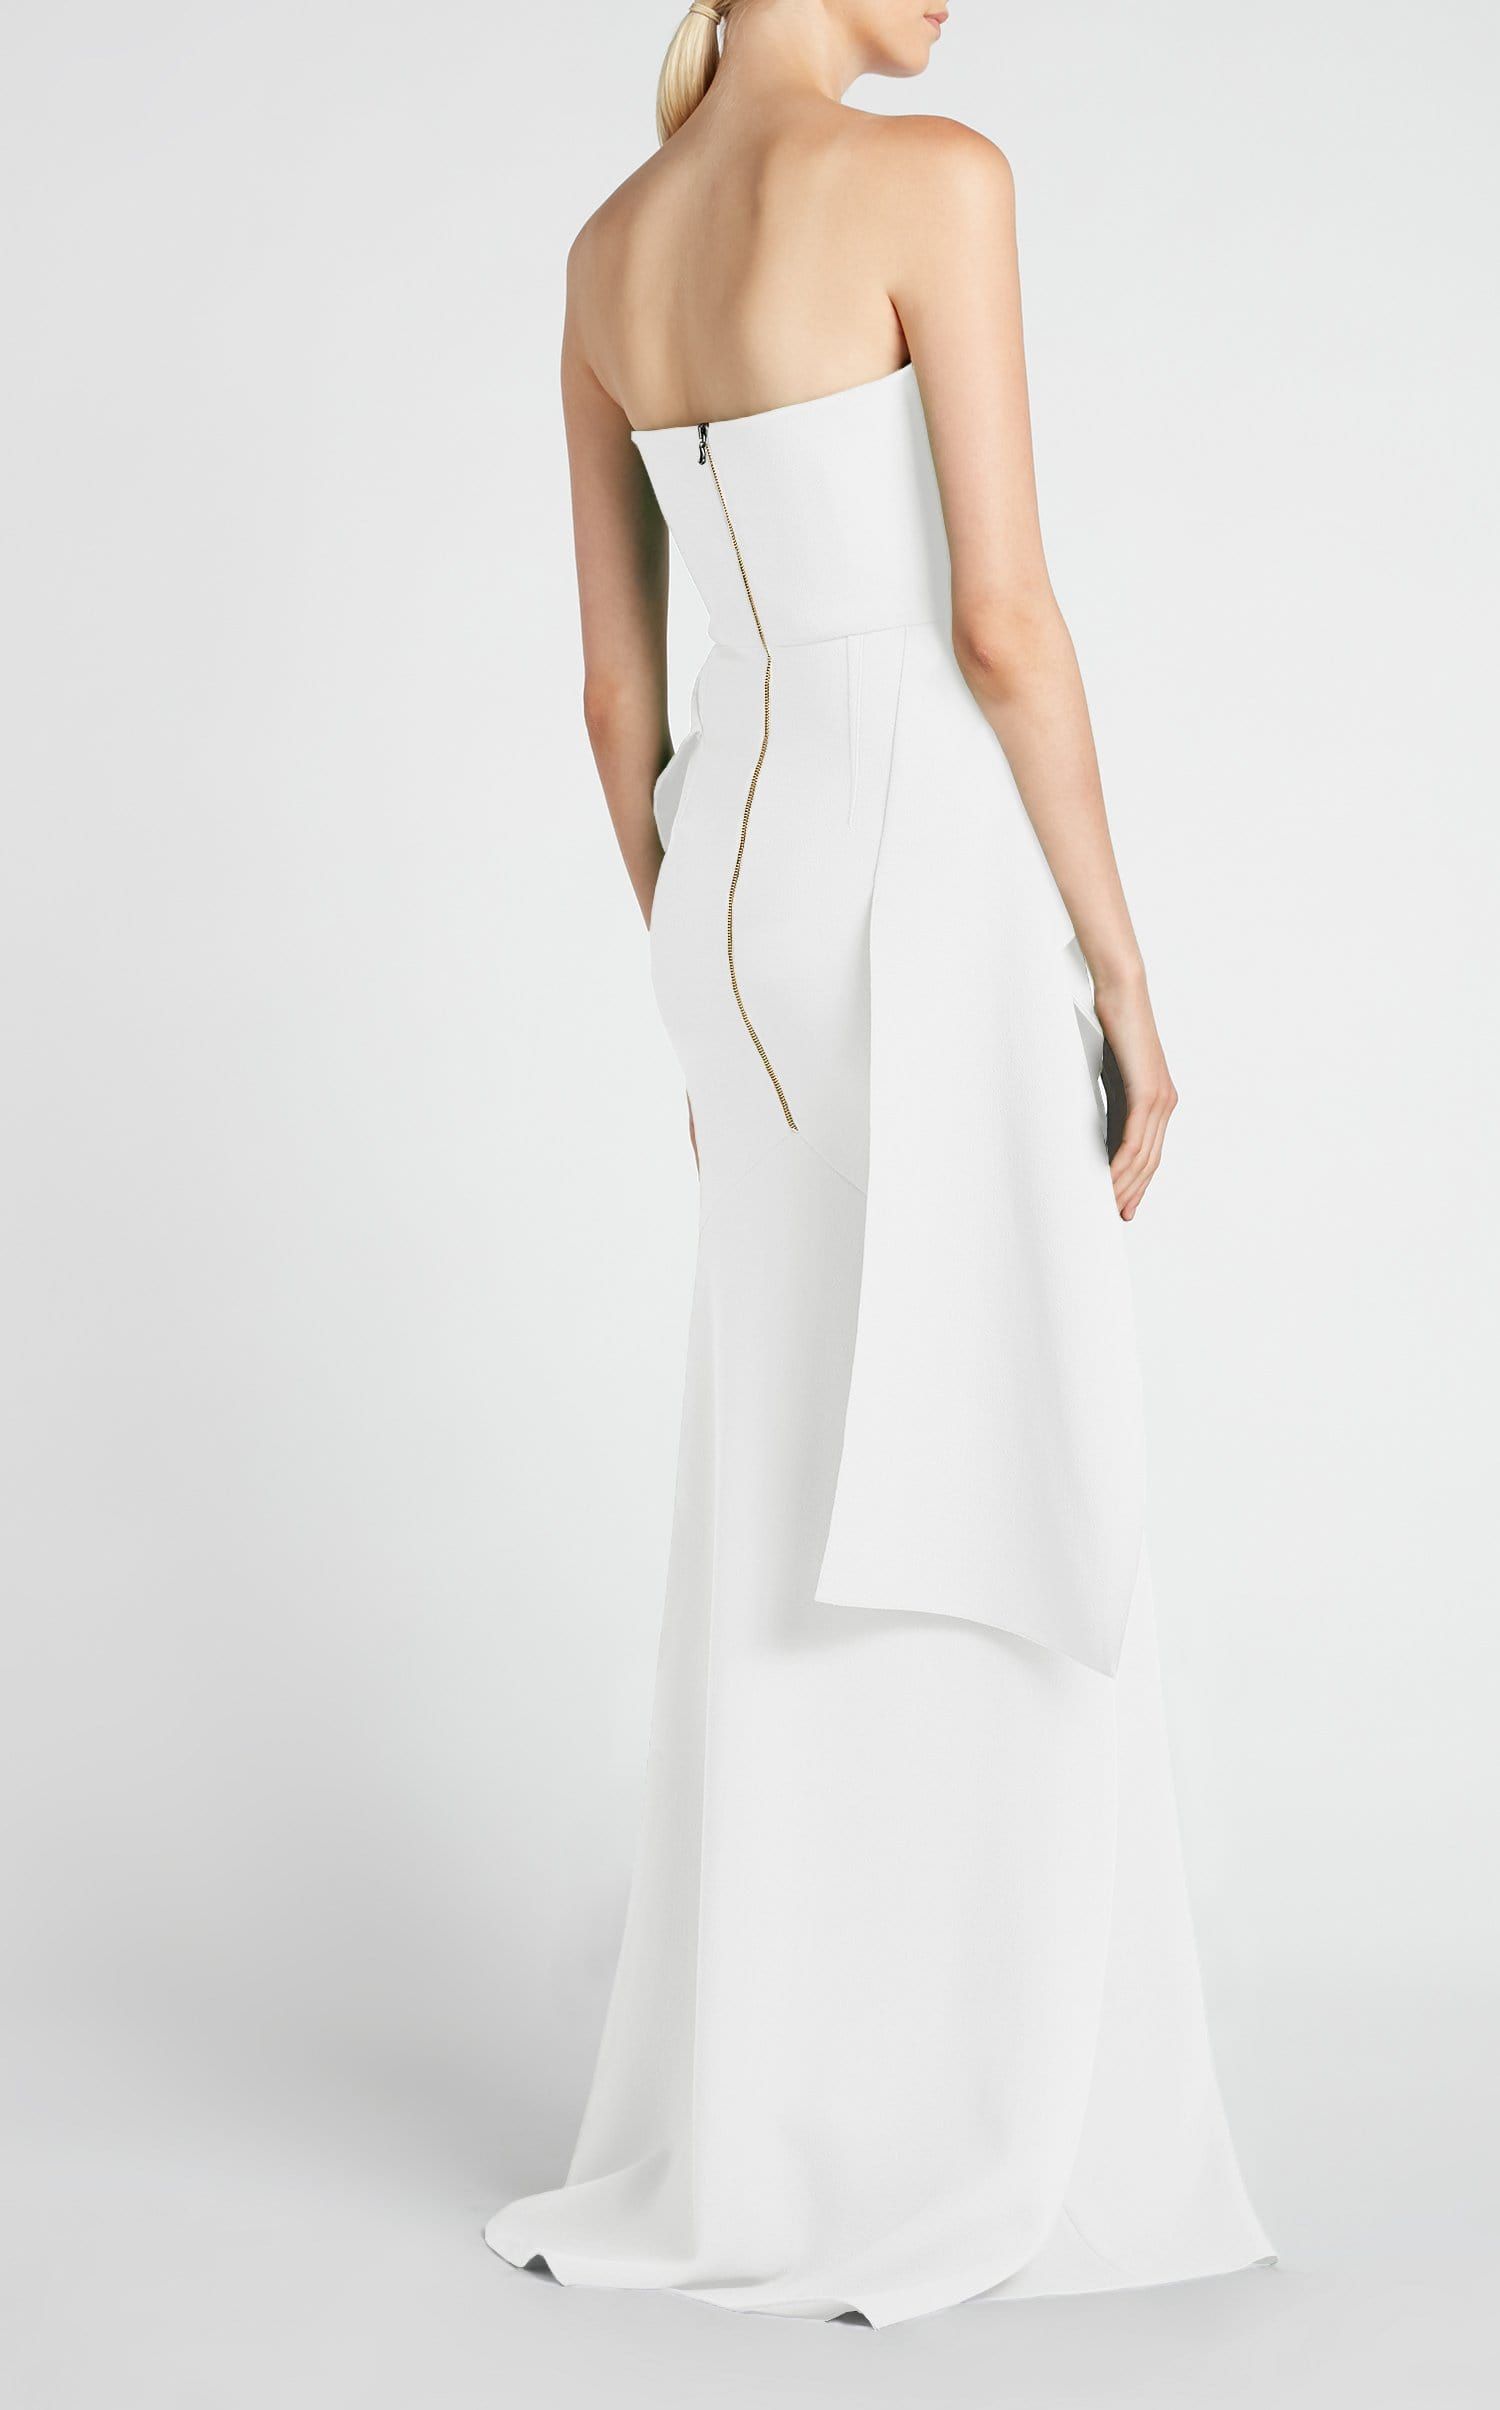 Bond Gown In White from Roland Mouret